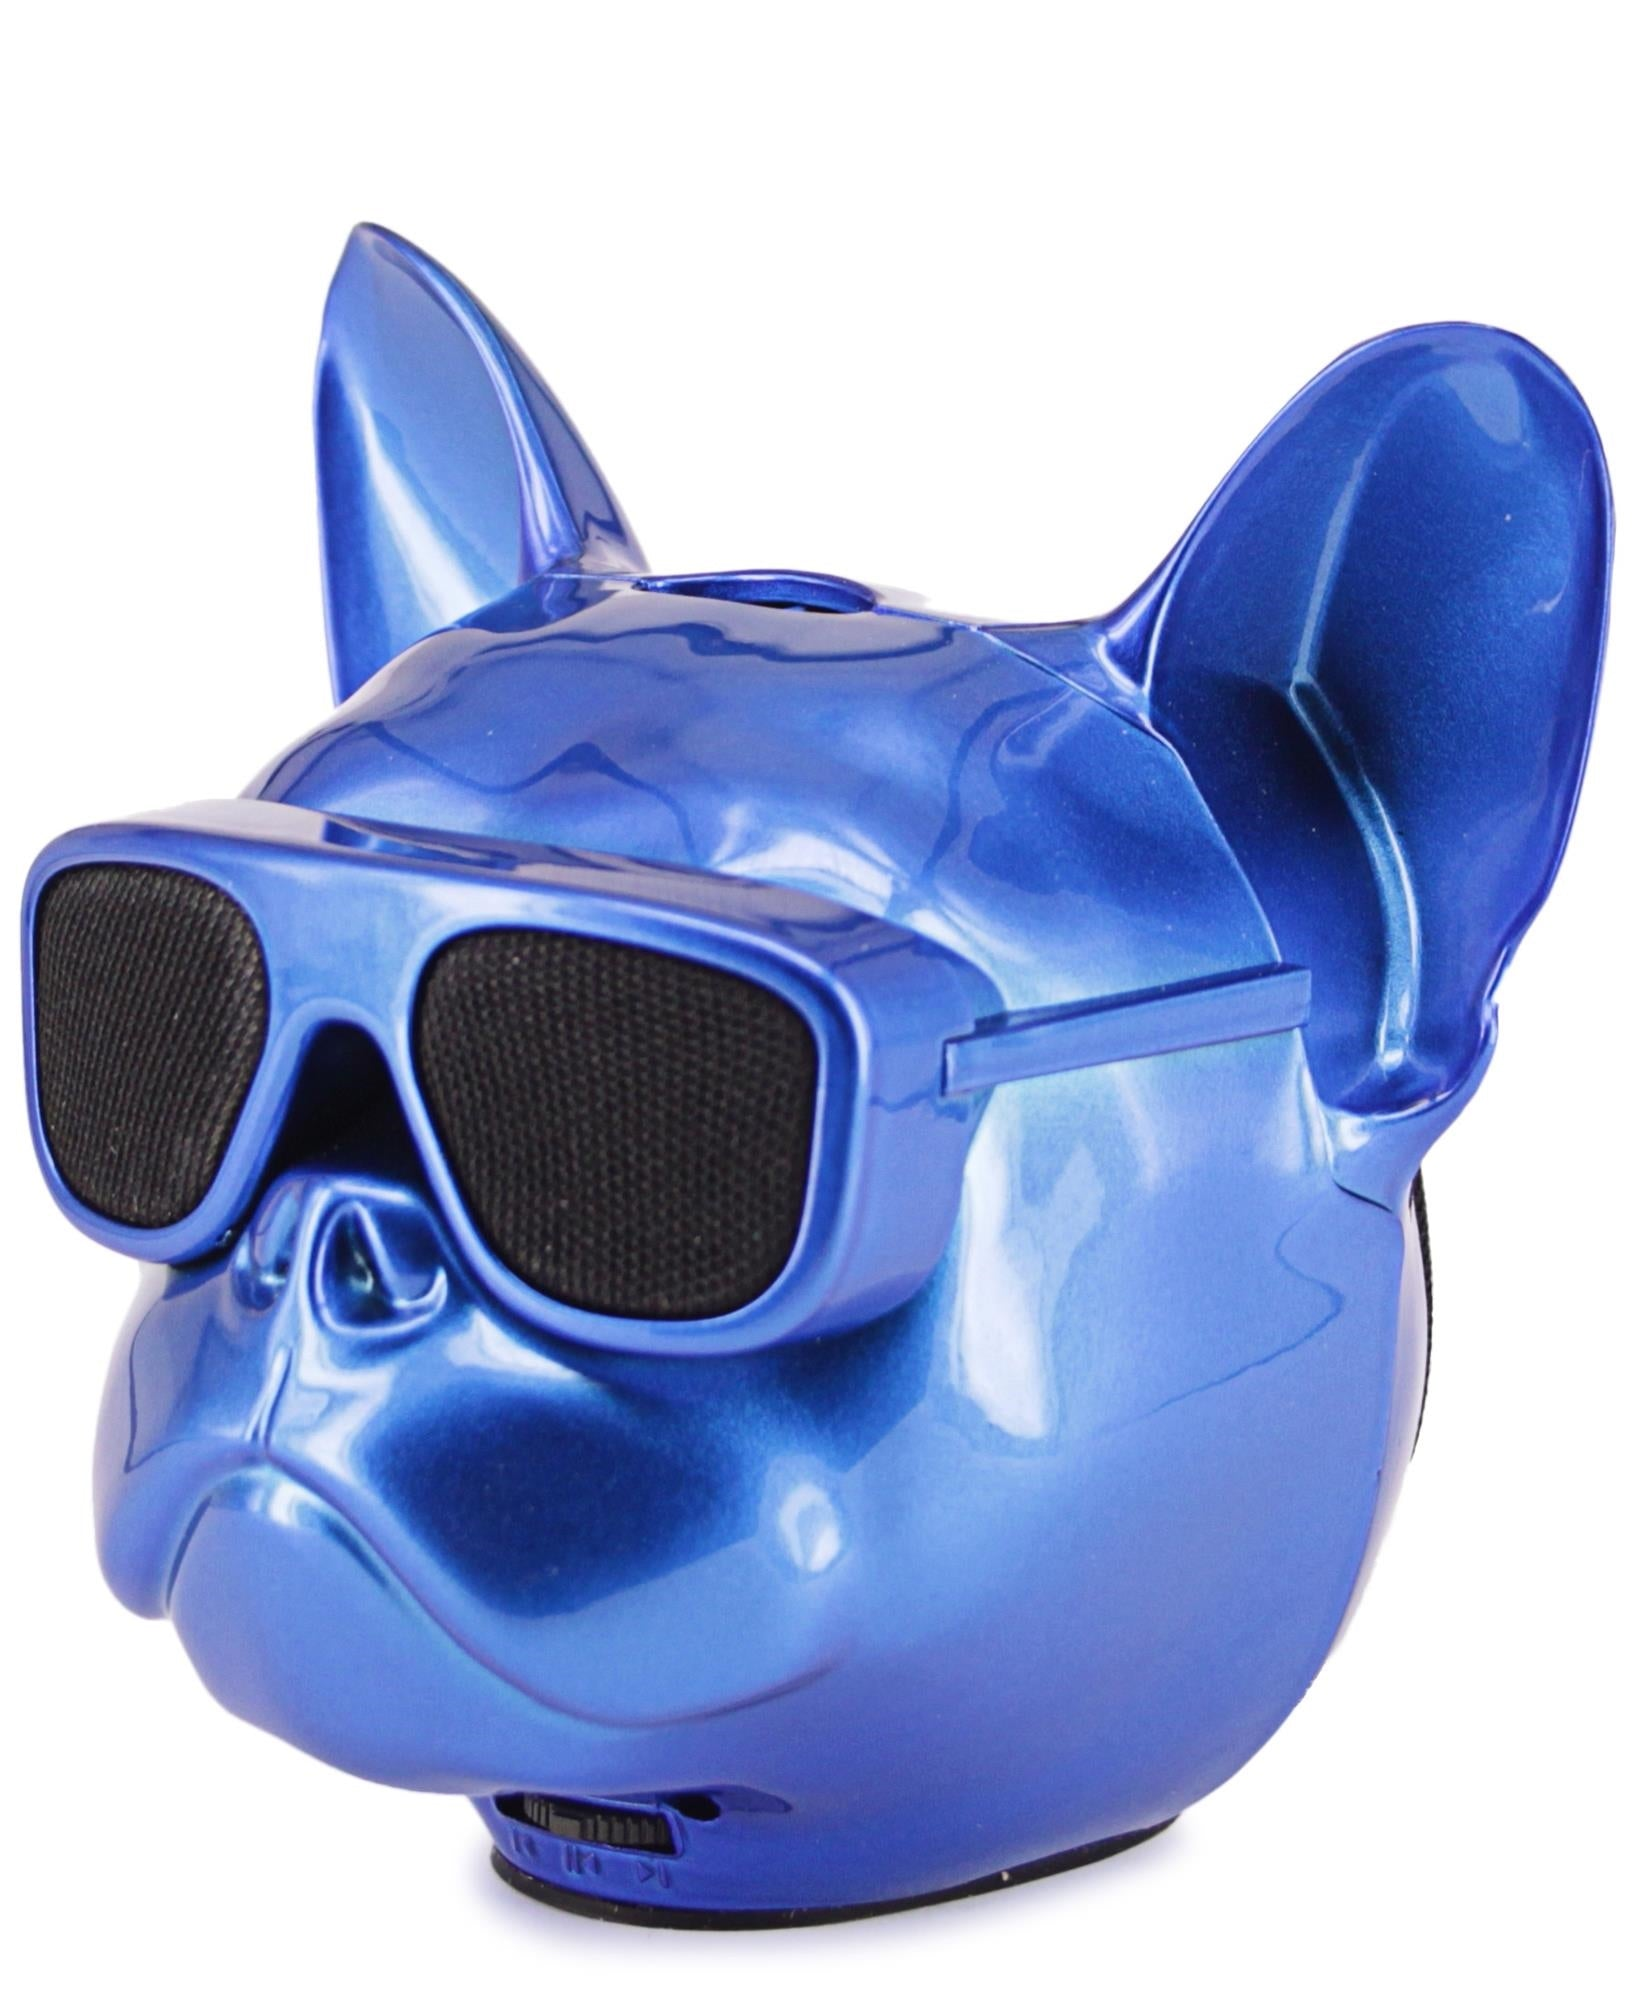 Mini Dog Head Bluetooth Speaker - Blue